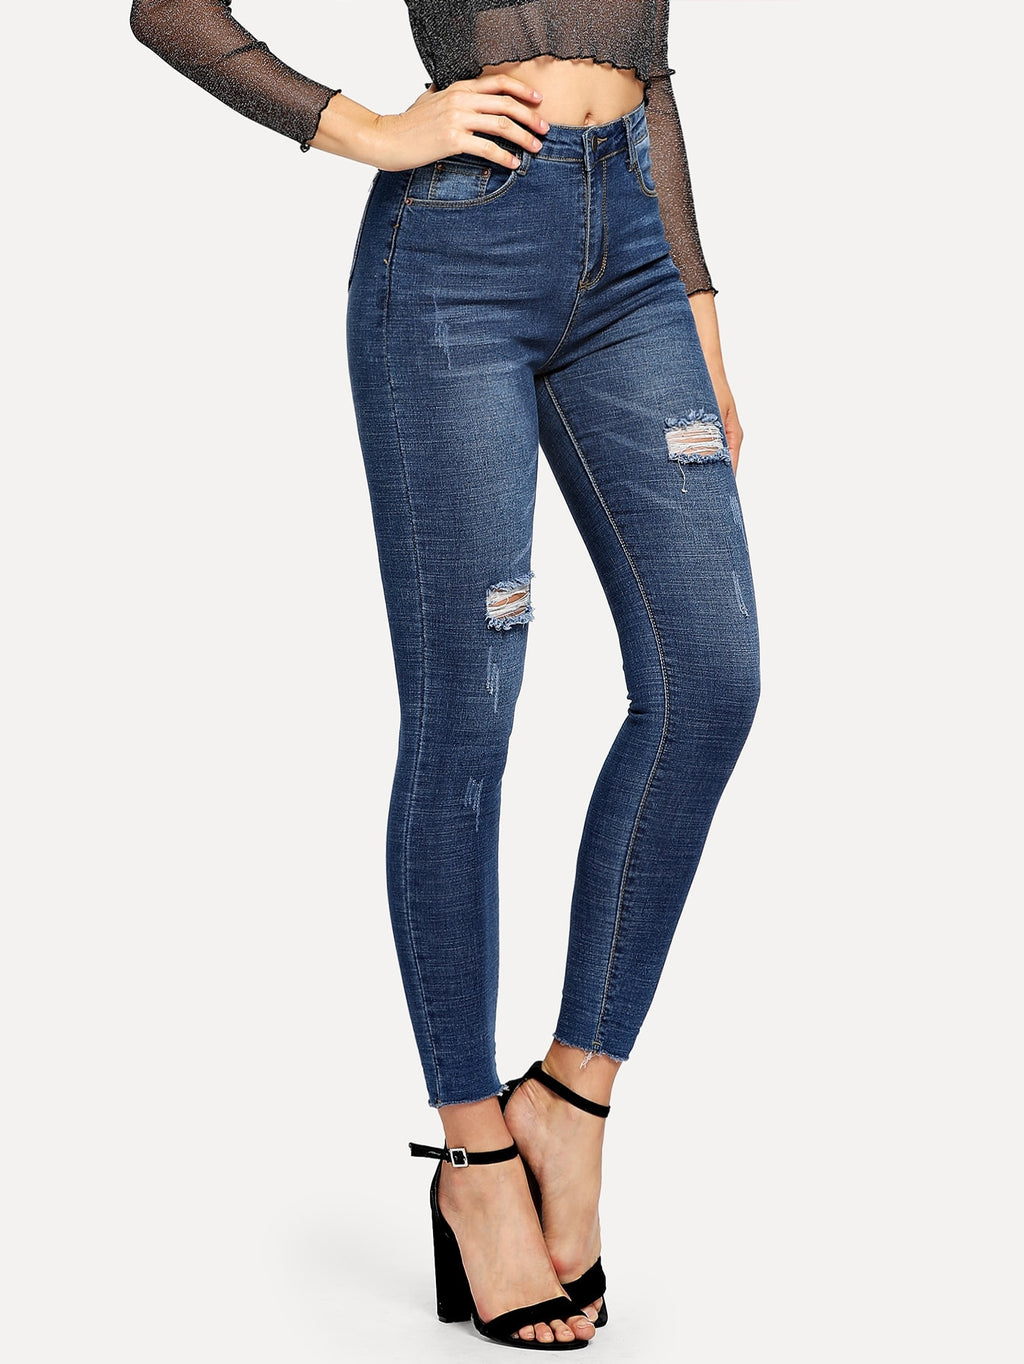 Ripped Jeans For Women - Skinny Jeans